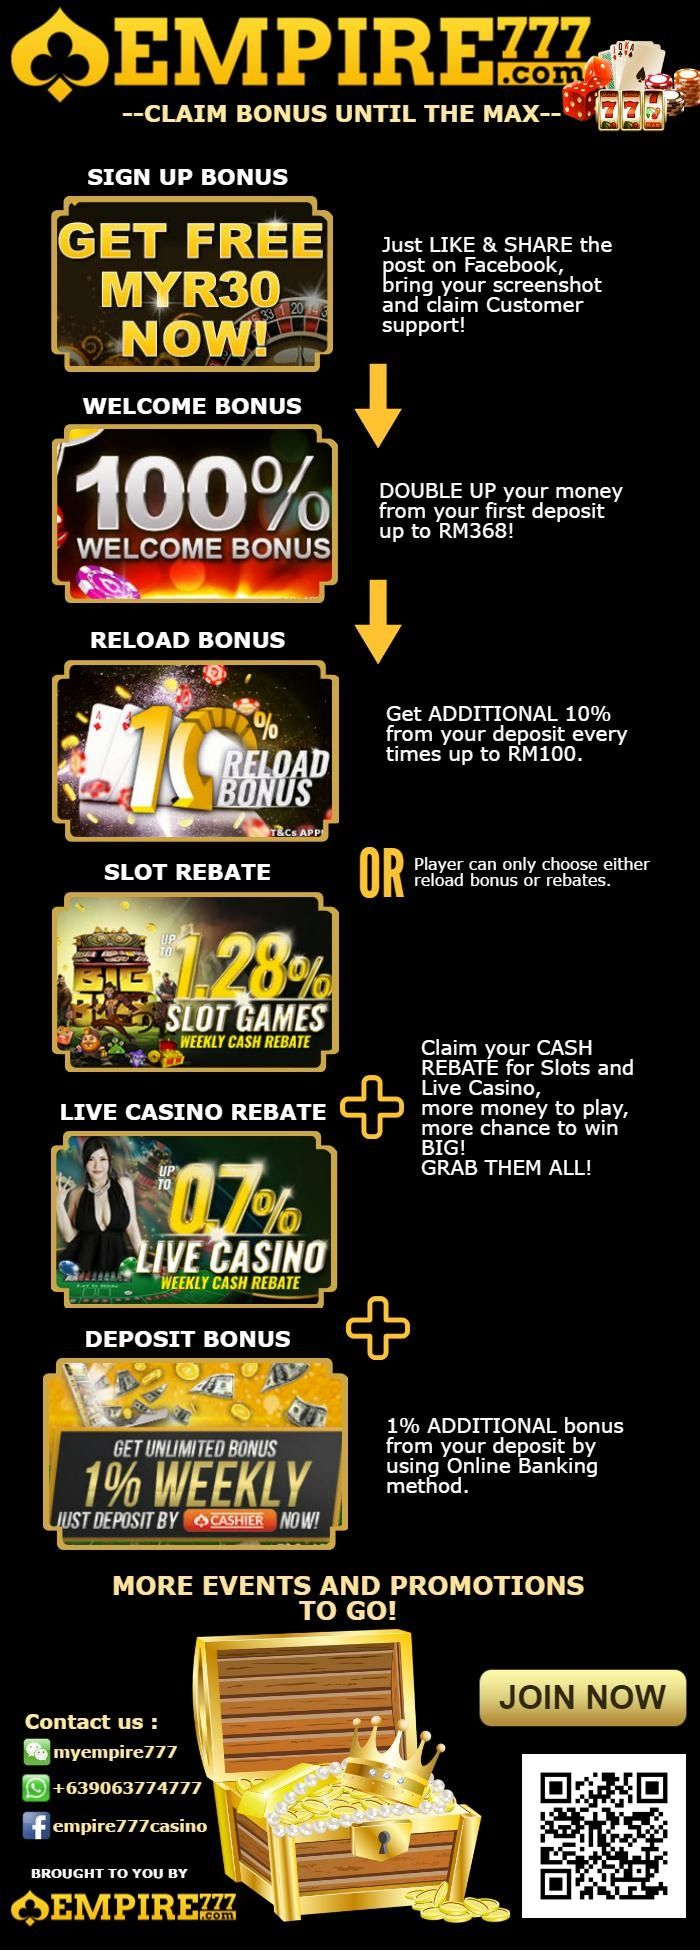 Best casino casino online neveda gambling